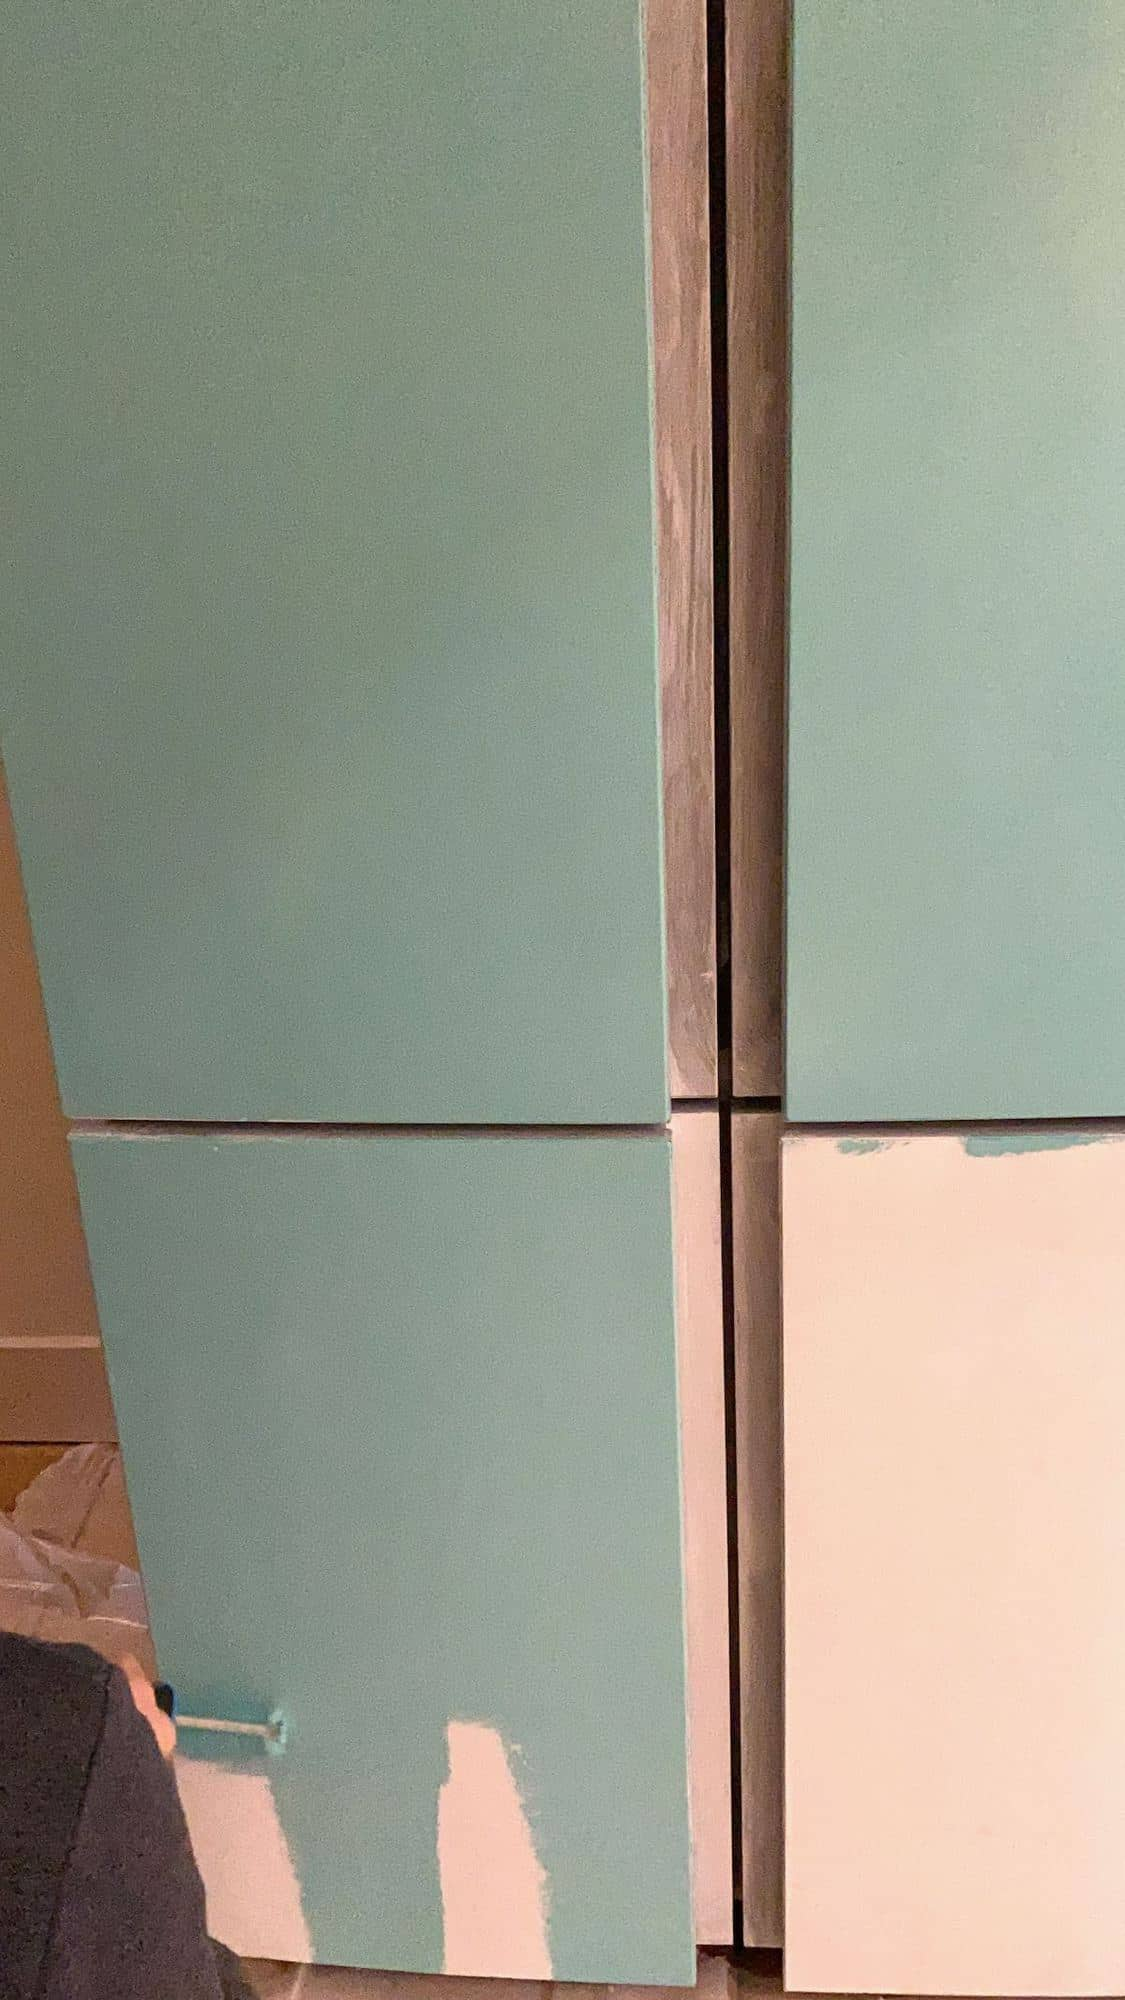 Three of the four doors of a fridge freezer newly painted with turquoise paint